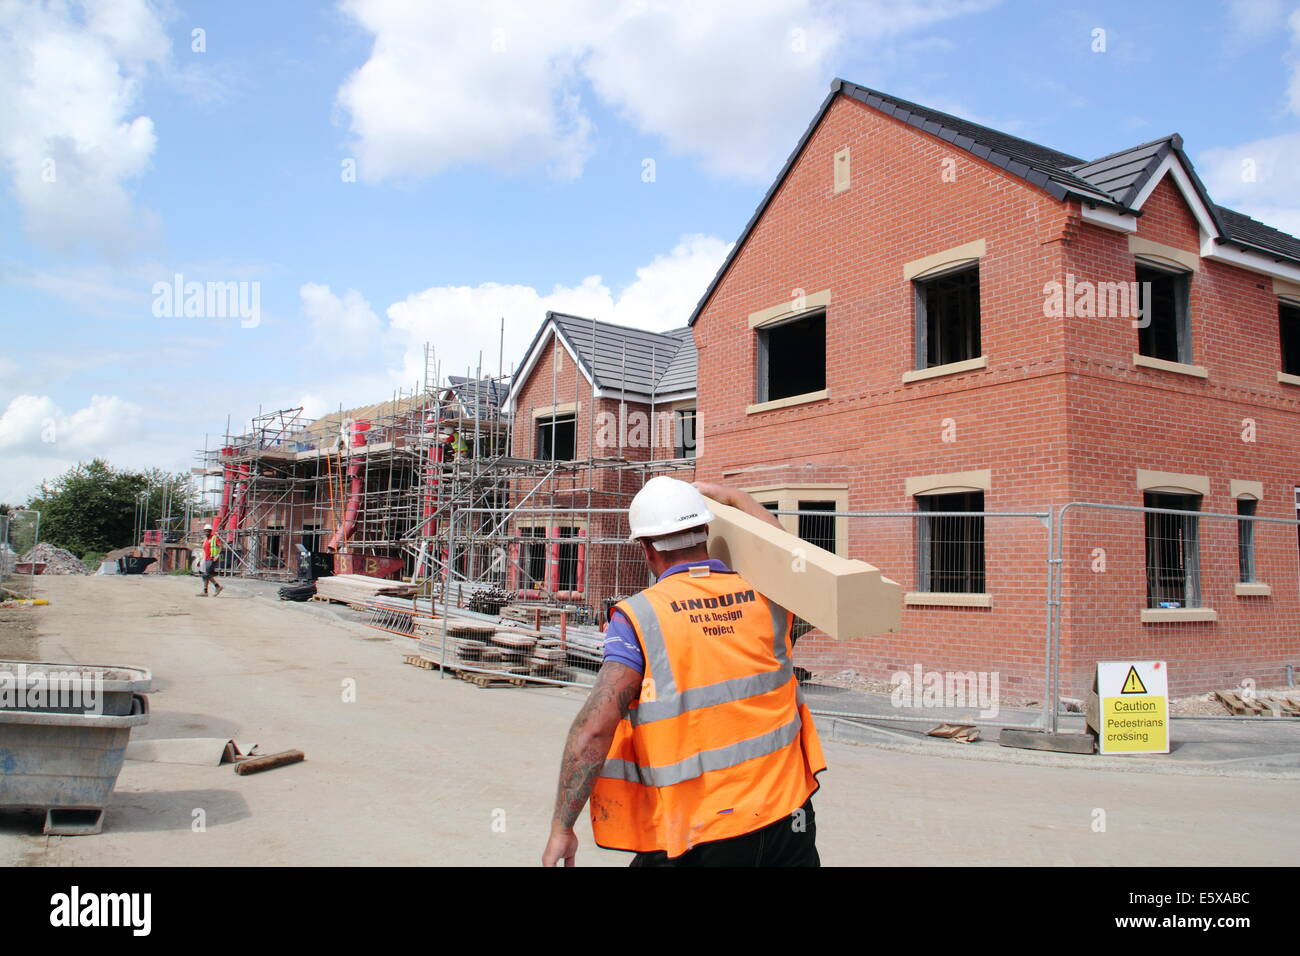 New homes constructed on UK building site, Derbyshire, Britain - summer - Stock Image